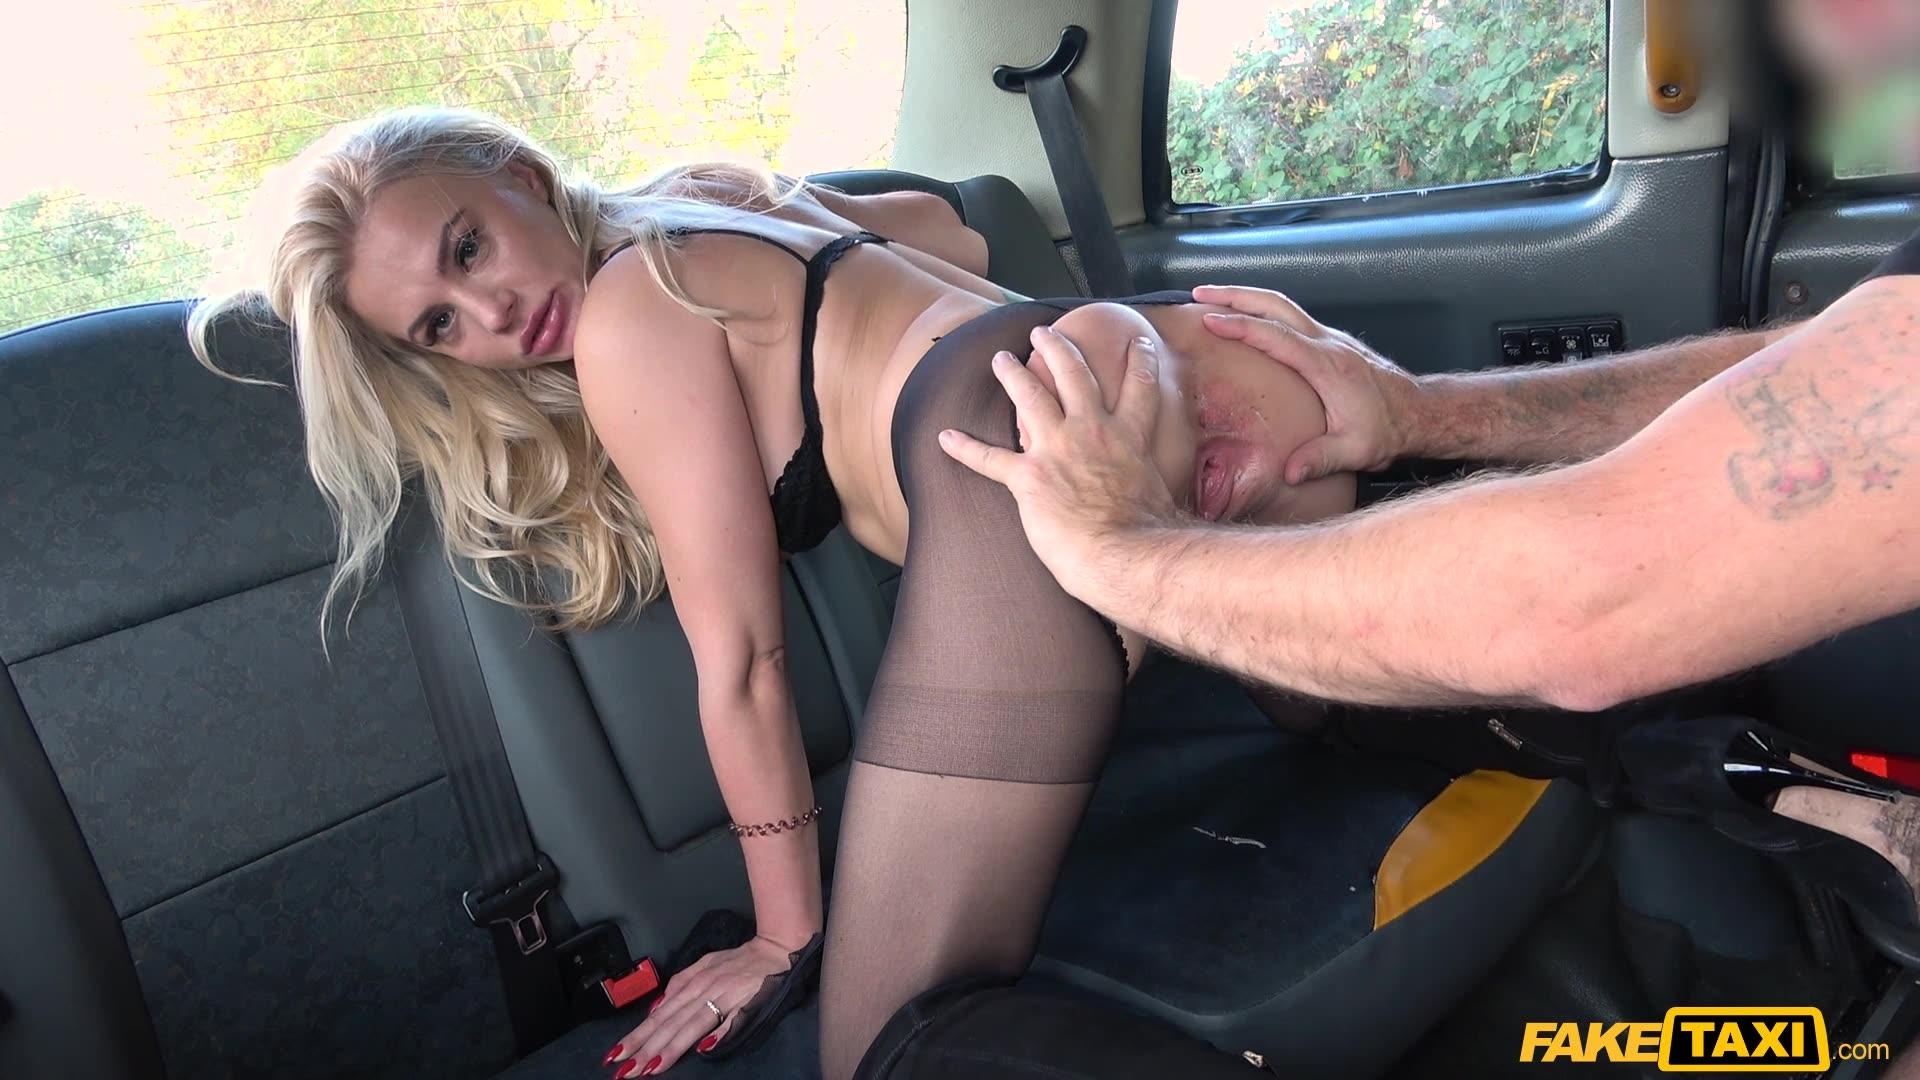 Dirty Sex Games Only In Fake Taxi On Gotporn